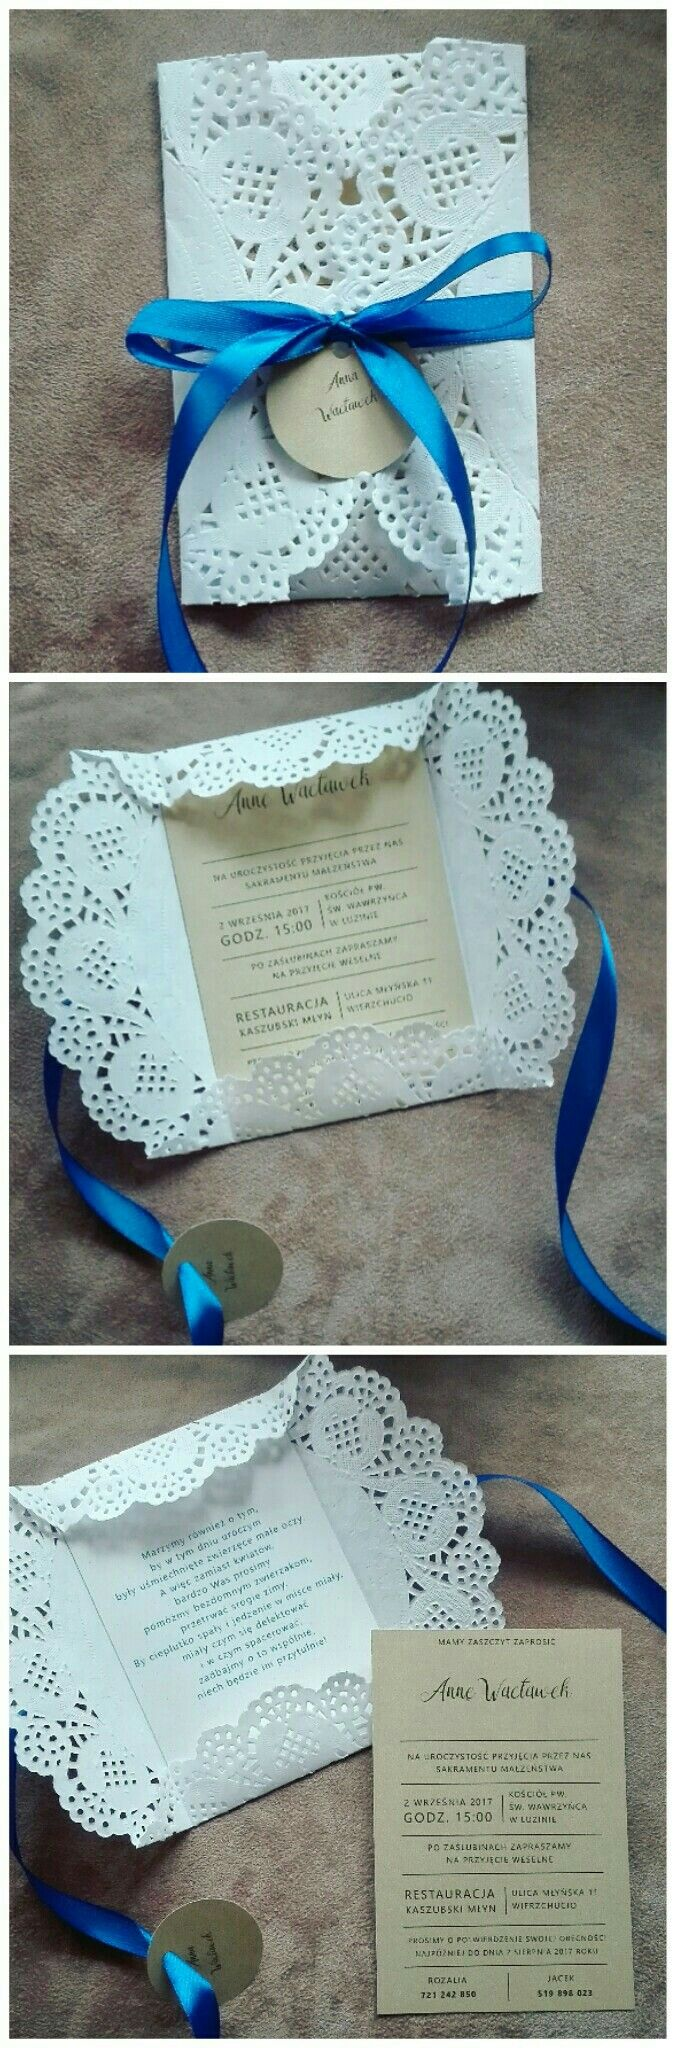 Wedding invitations lace napkin gold paper navy blue envelope diy handmade